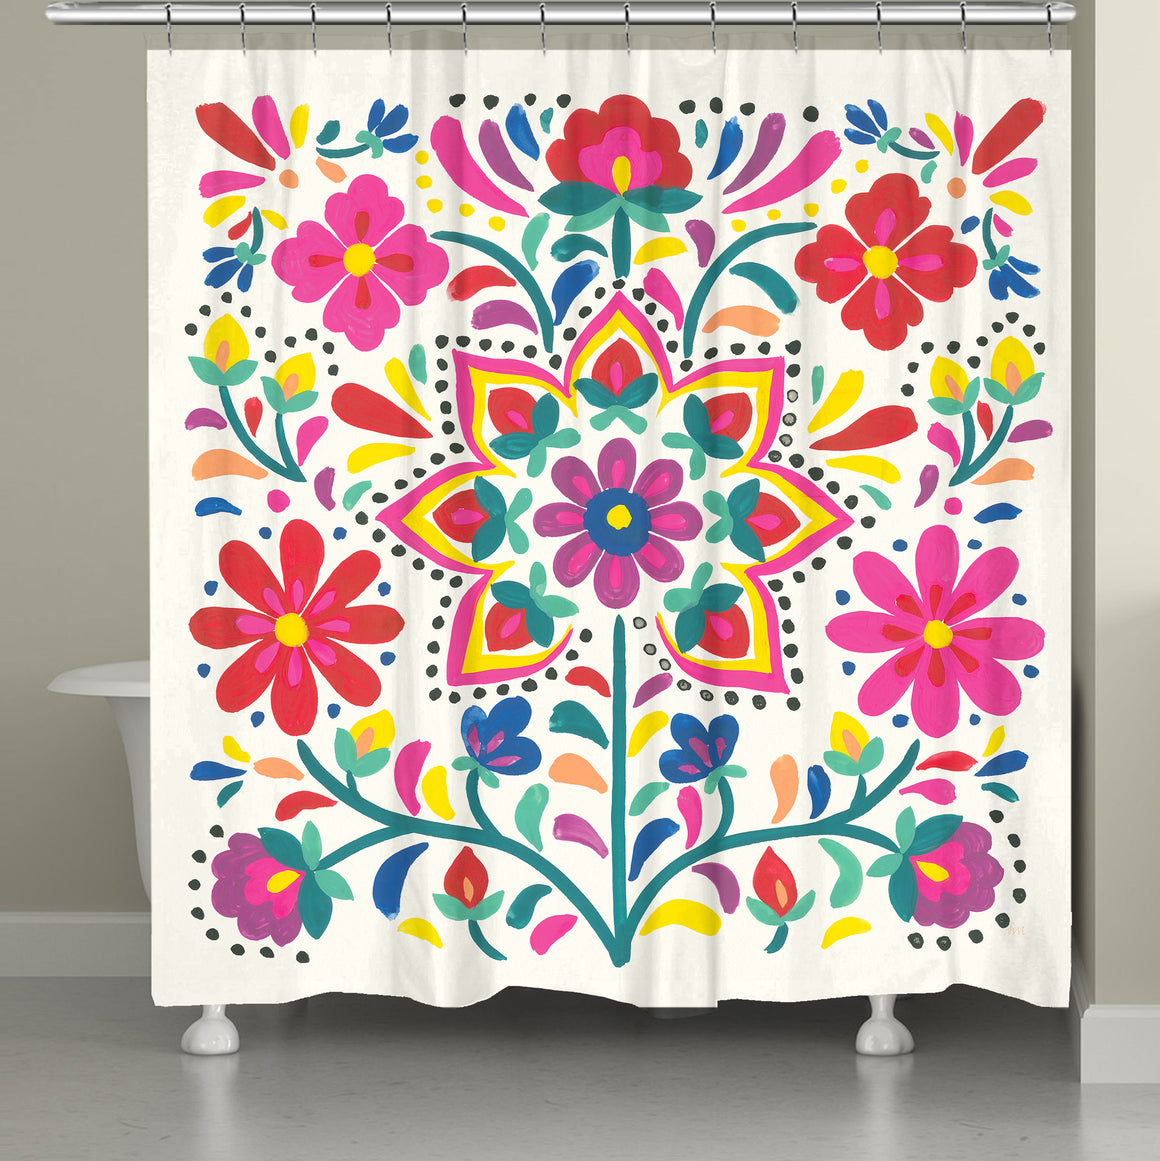 This beautiful folk-art inspired motif features pops of vibrant colorful flowers displayed on a off-white background.